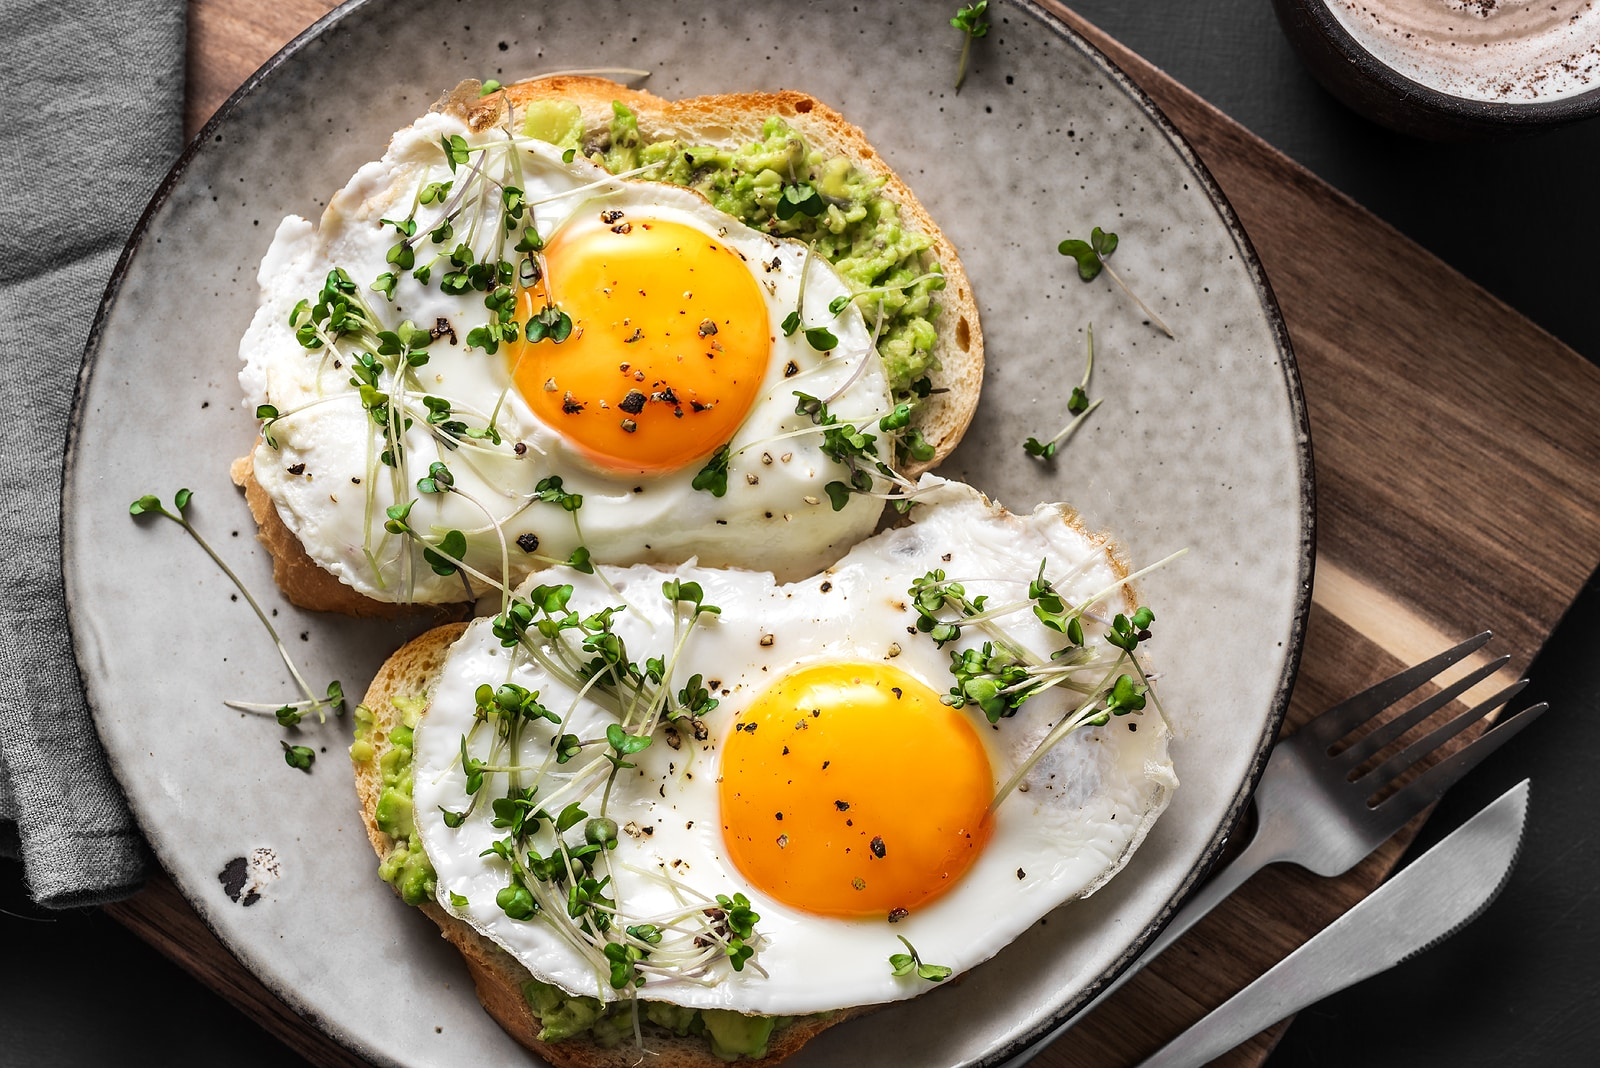 Can food sensitivities cause fatigue? Eggs on toast